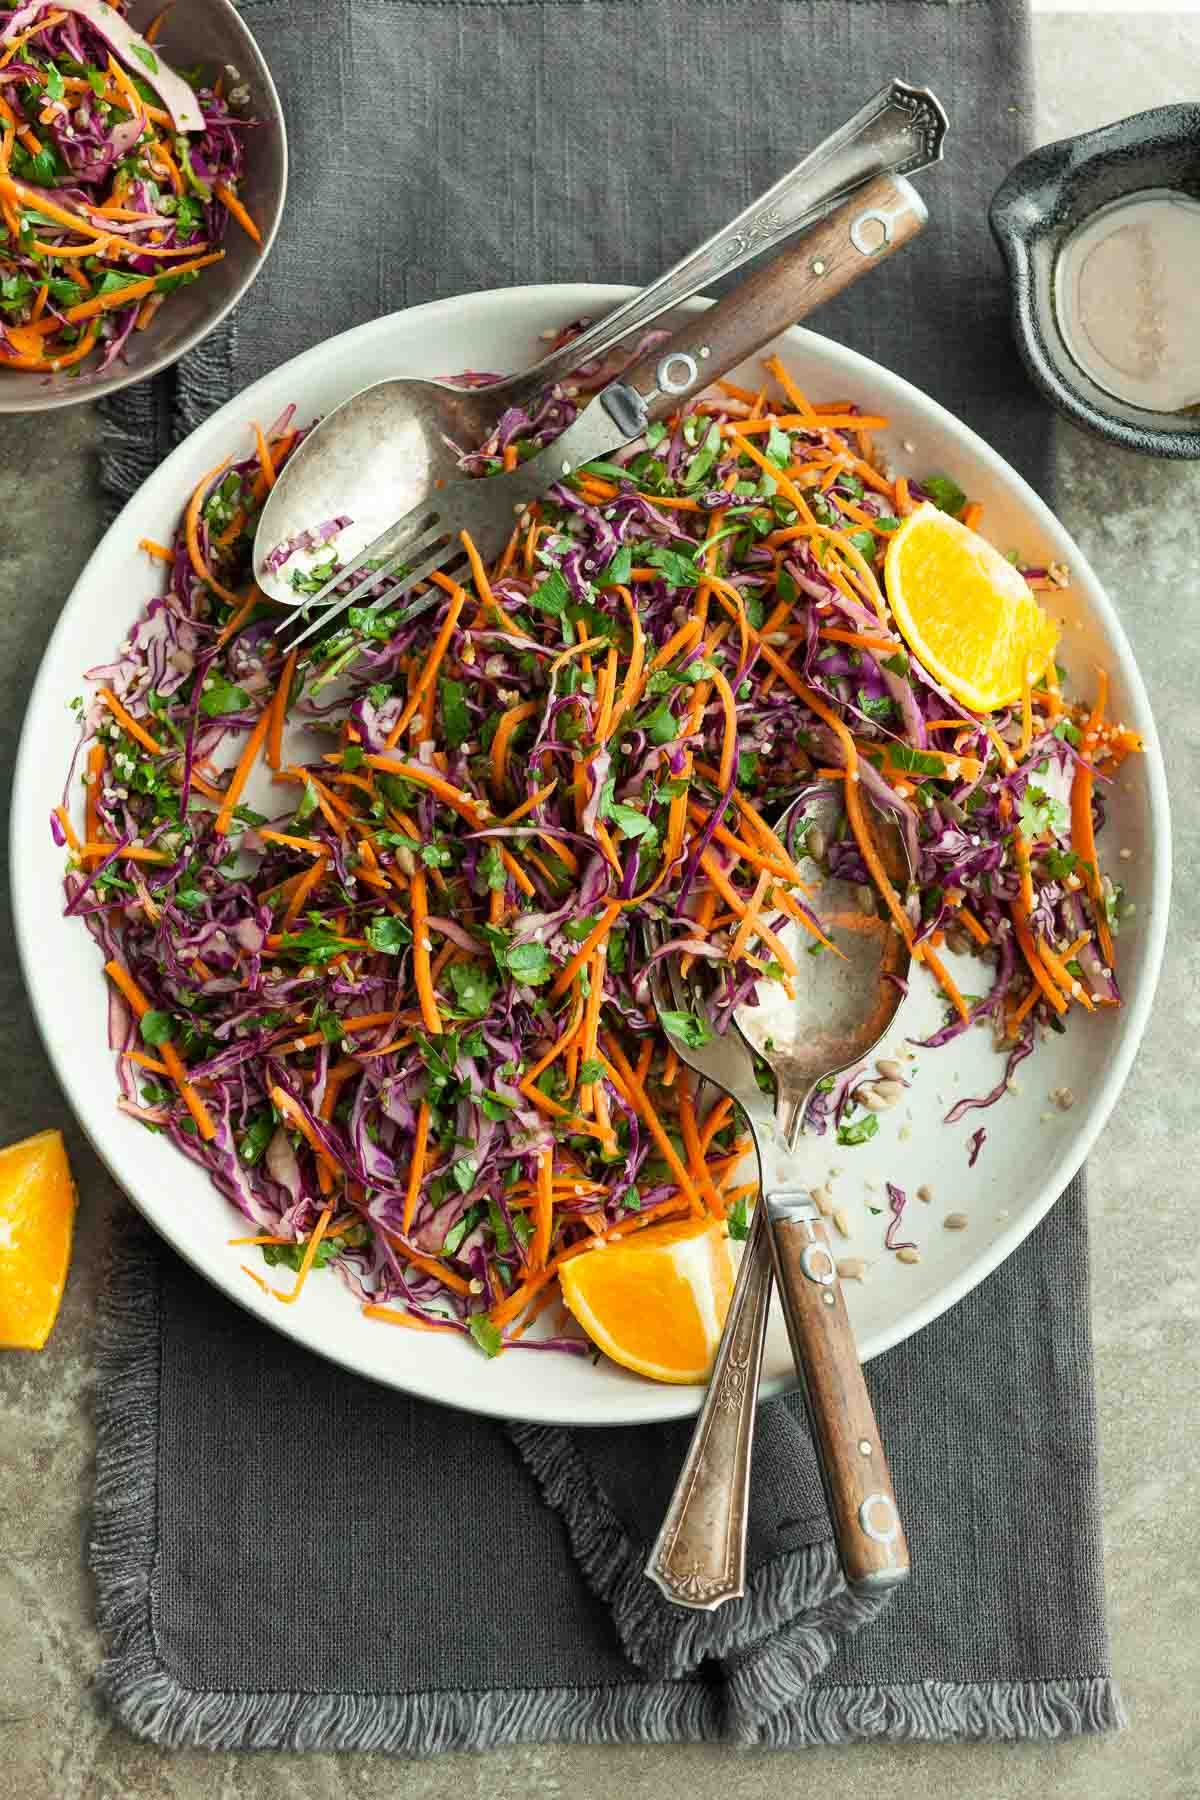 Carrot Cabbage Slaw With Orange Sesame Dressing Paleo Vegan Opskrift I 2020